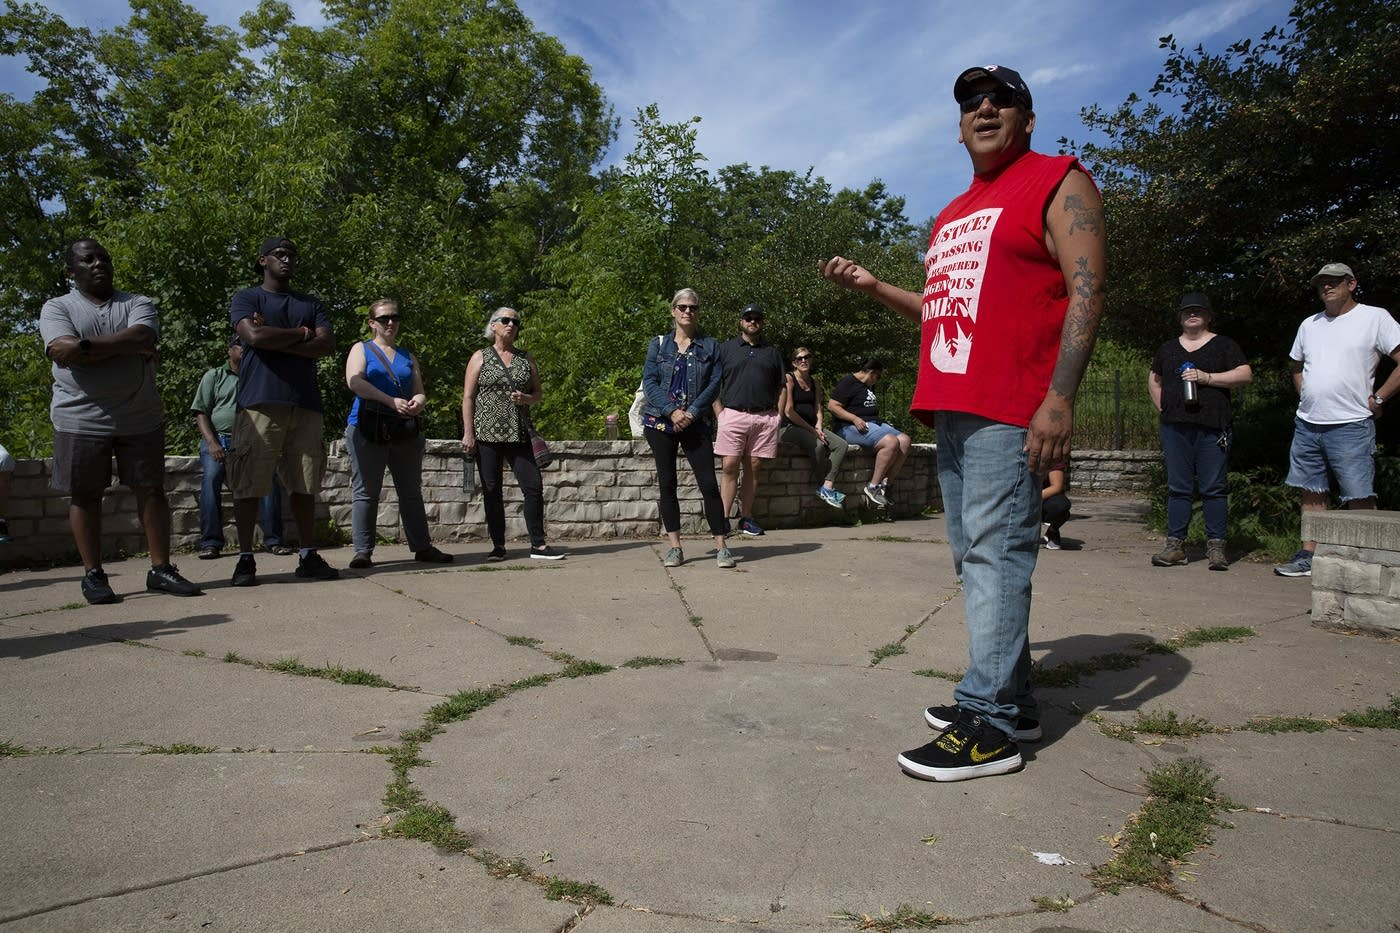 Picture credit: Christine T. Nguyen | MPR News (obtained from  https://www.mprnews.org/story/2019/08/14/native-american-tour-teachers-historical-trauma )